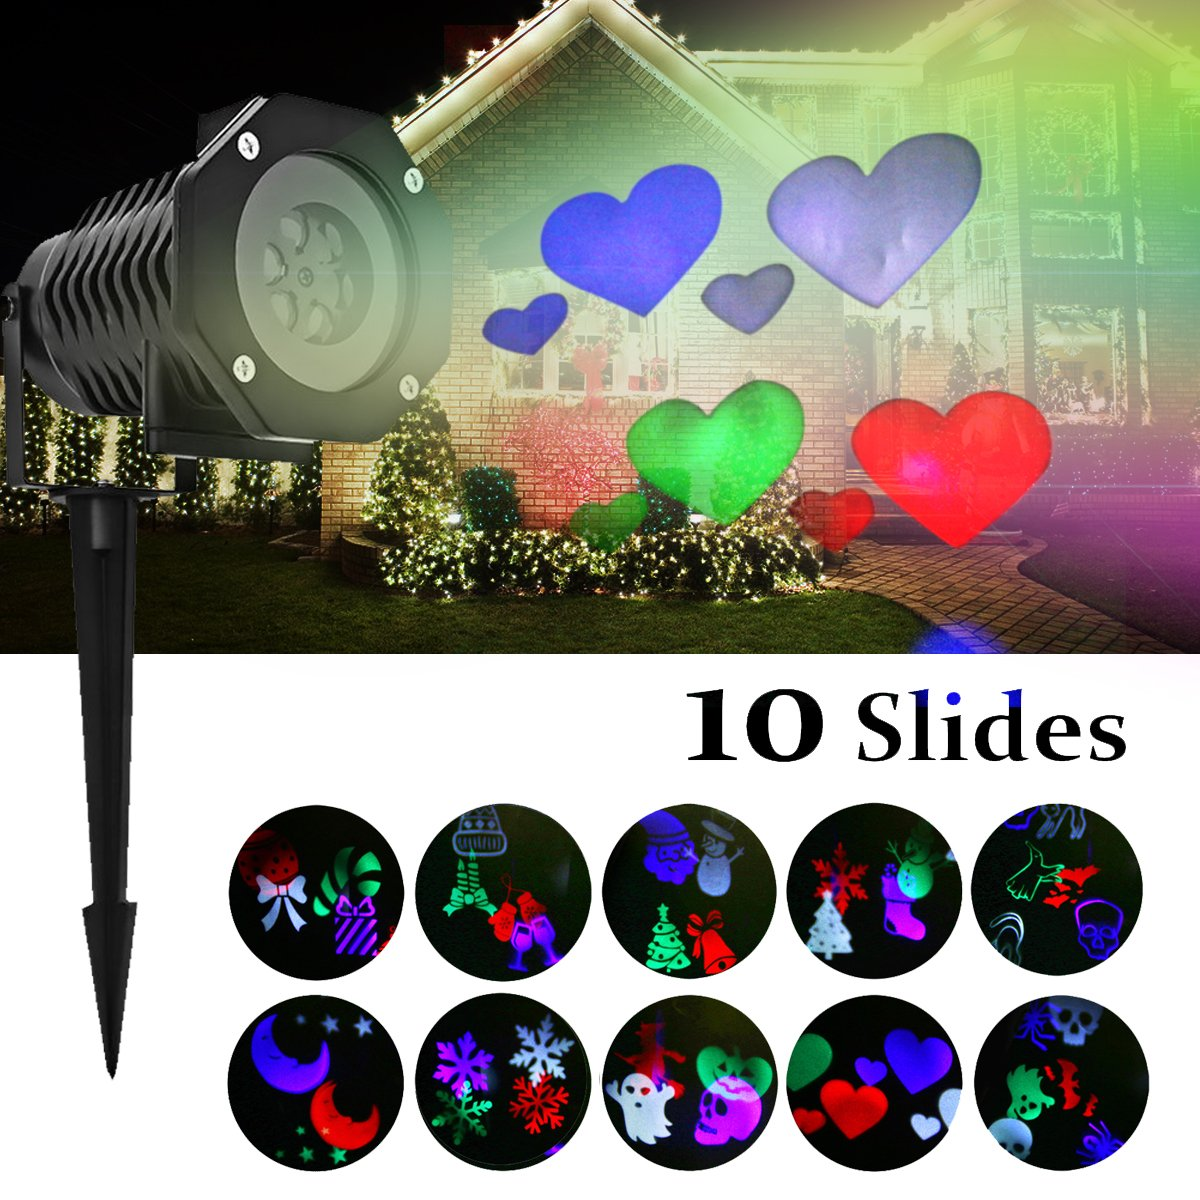 Projection Light Outdoor - High Waterproof Auto Rotating Spotlight with 10 Rotating Multicolor Slides - Lighting Gobo Lawn Lights Garden Path Party for Easter,Holloween,Birthday,Wedding Decor